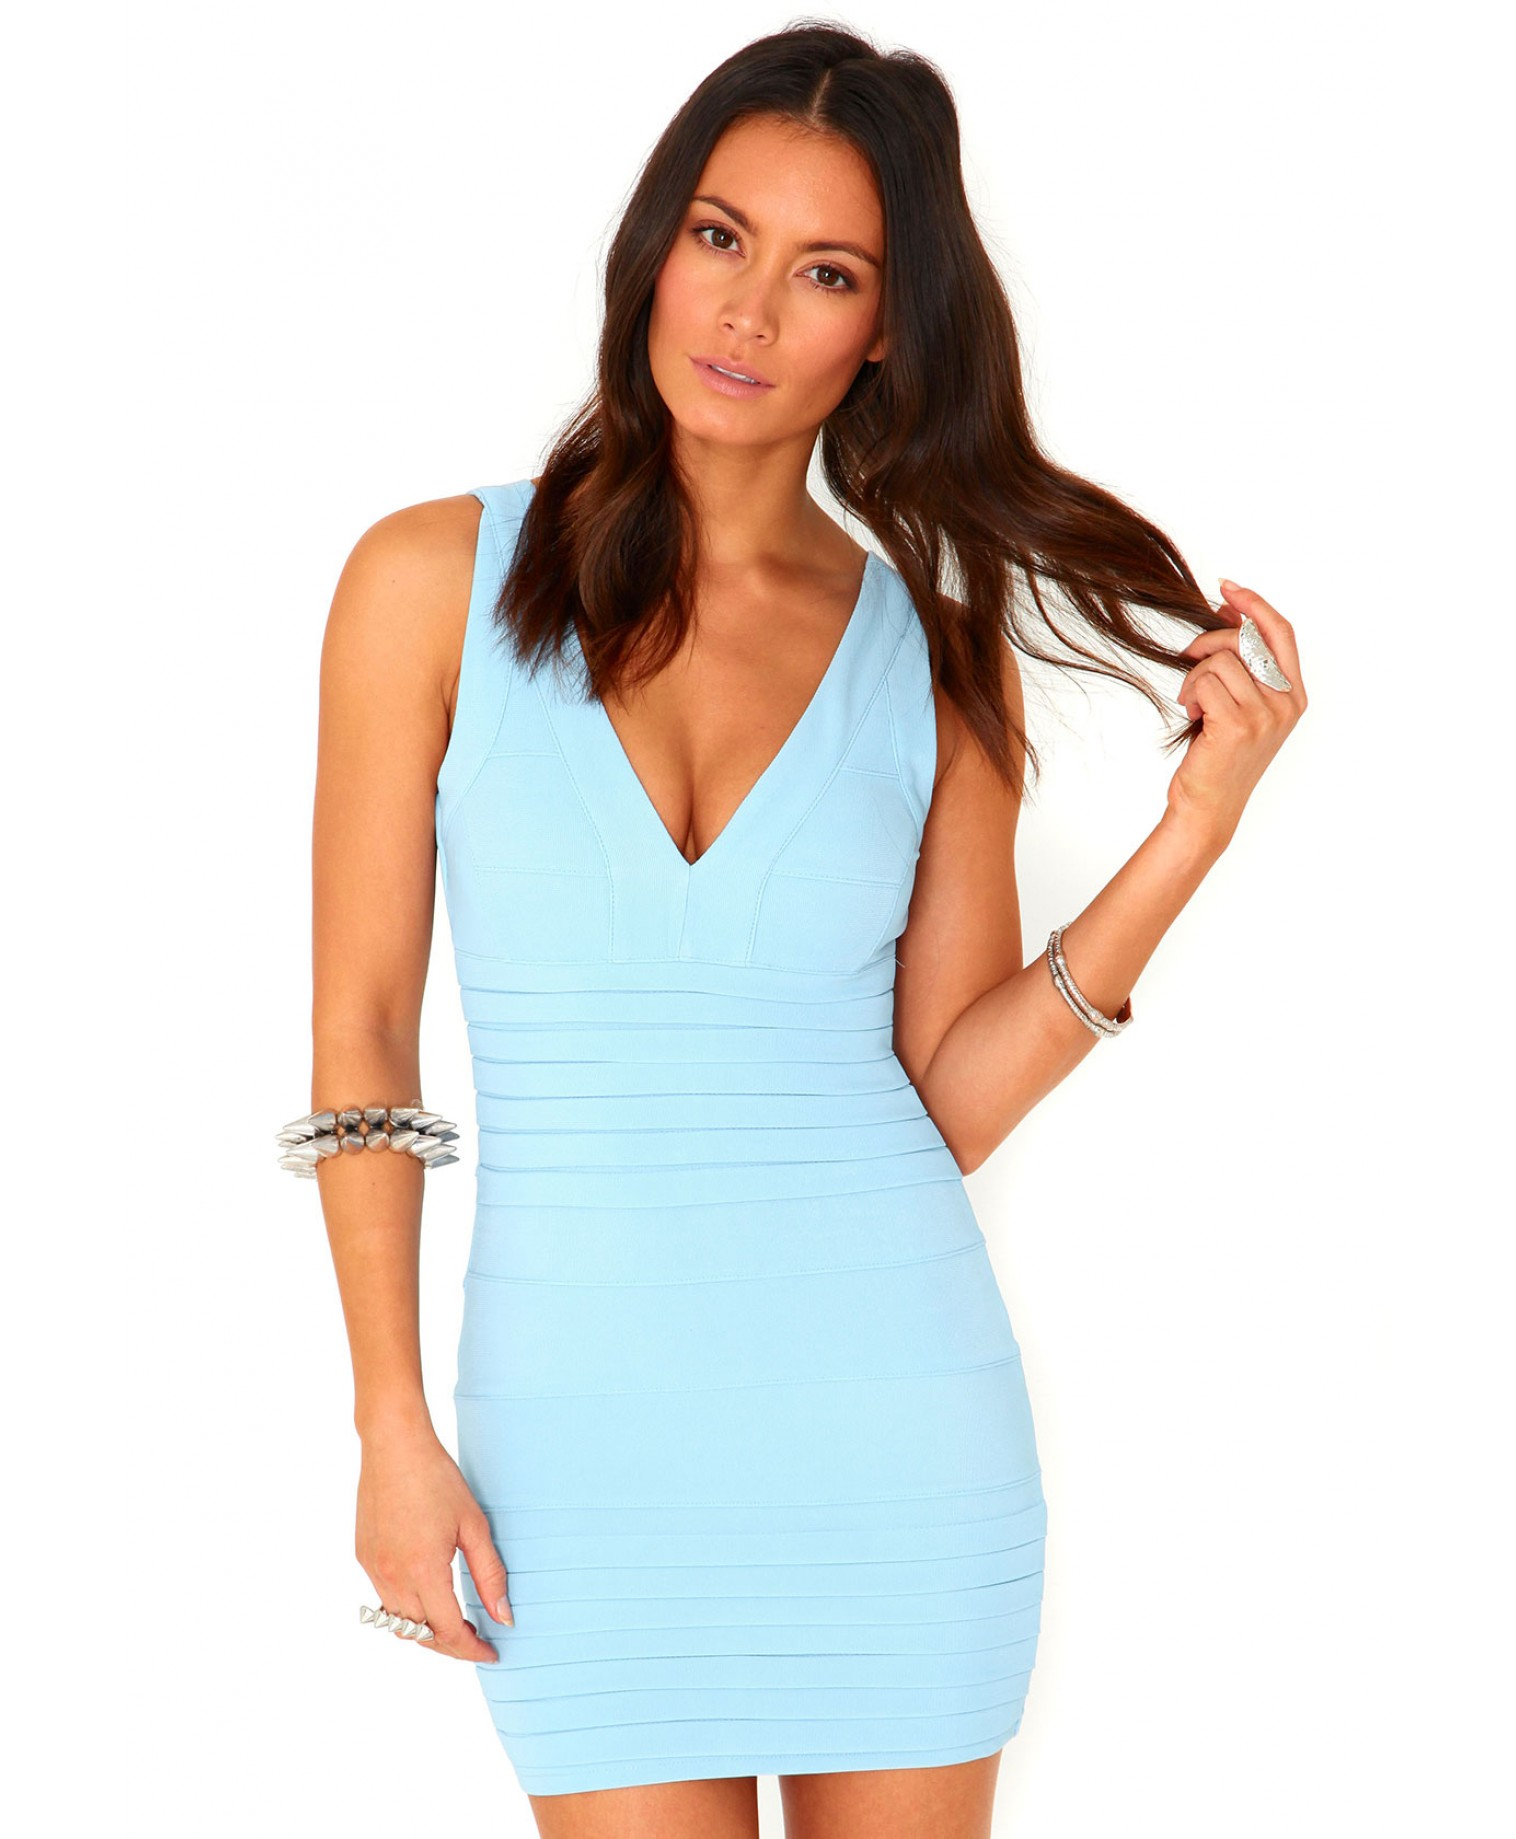 Missguided Leena Bandage Bodycon Dress In Baby Blue in ...